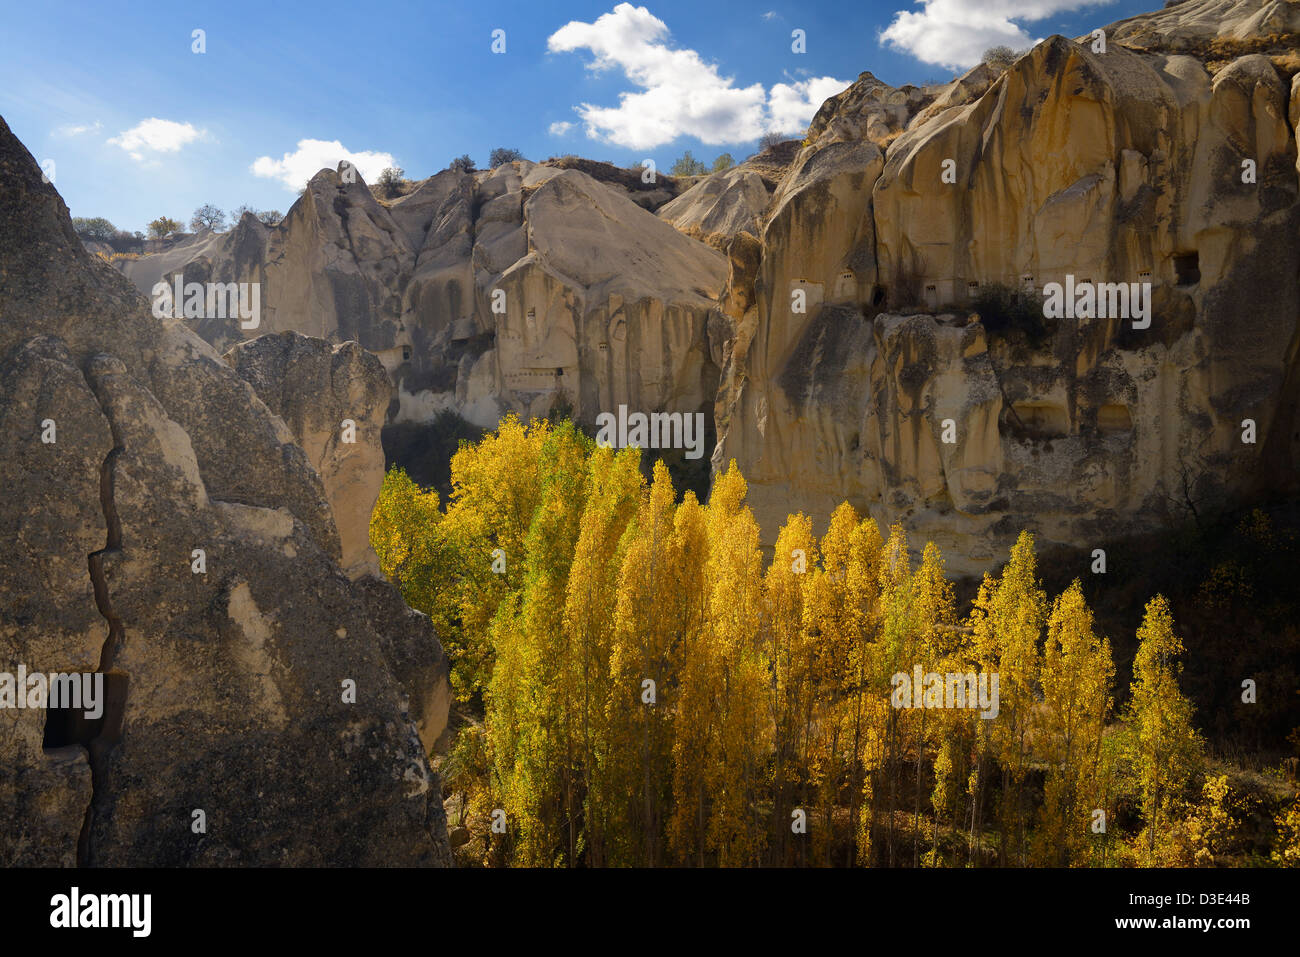 Goreme Valley cave dwelling pigeon houses at Open Air Museum Cappadocia Turkey in the Fall - Stock Image